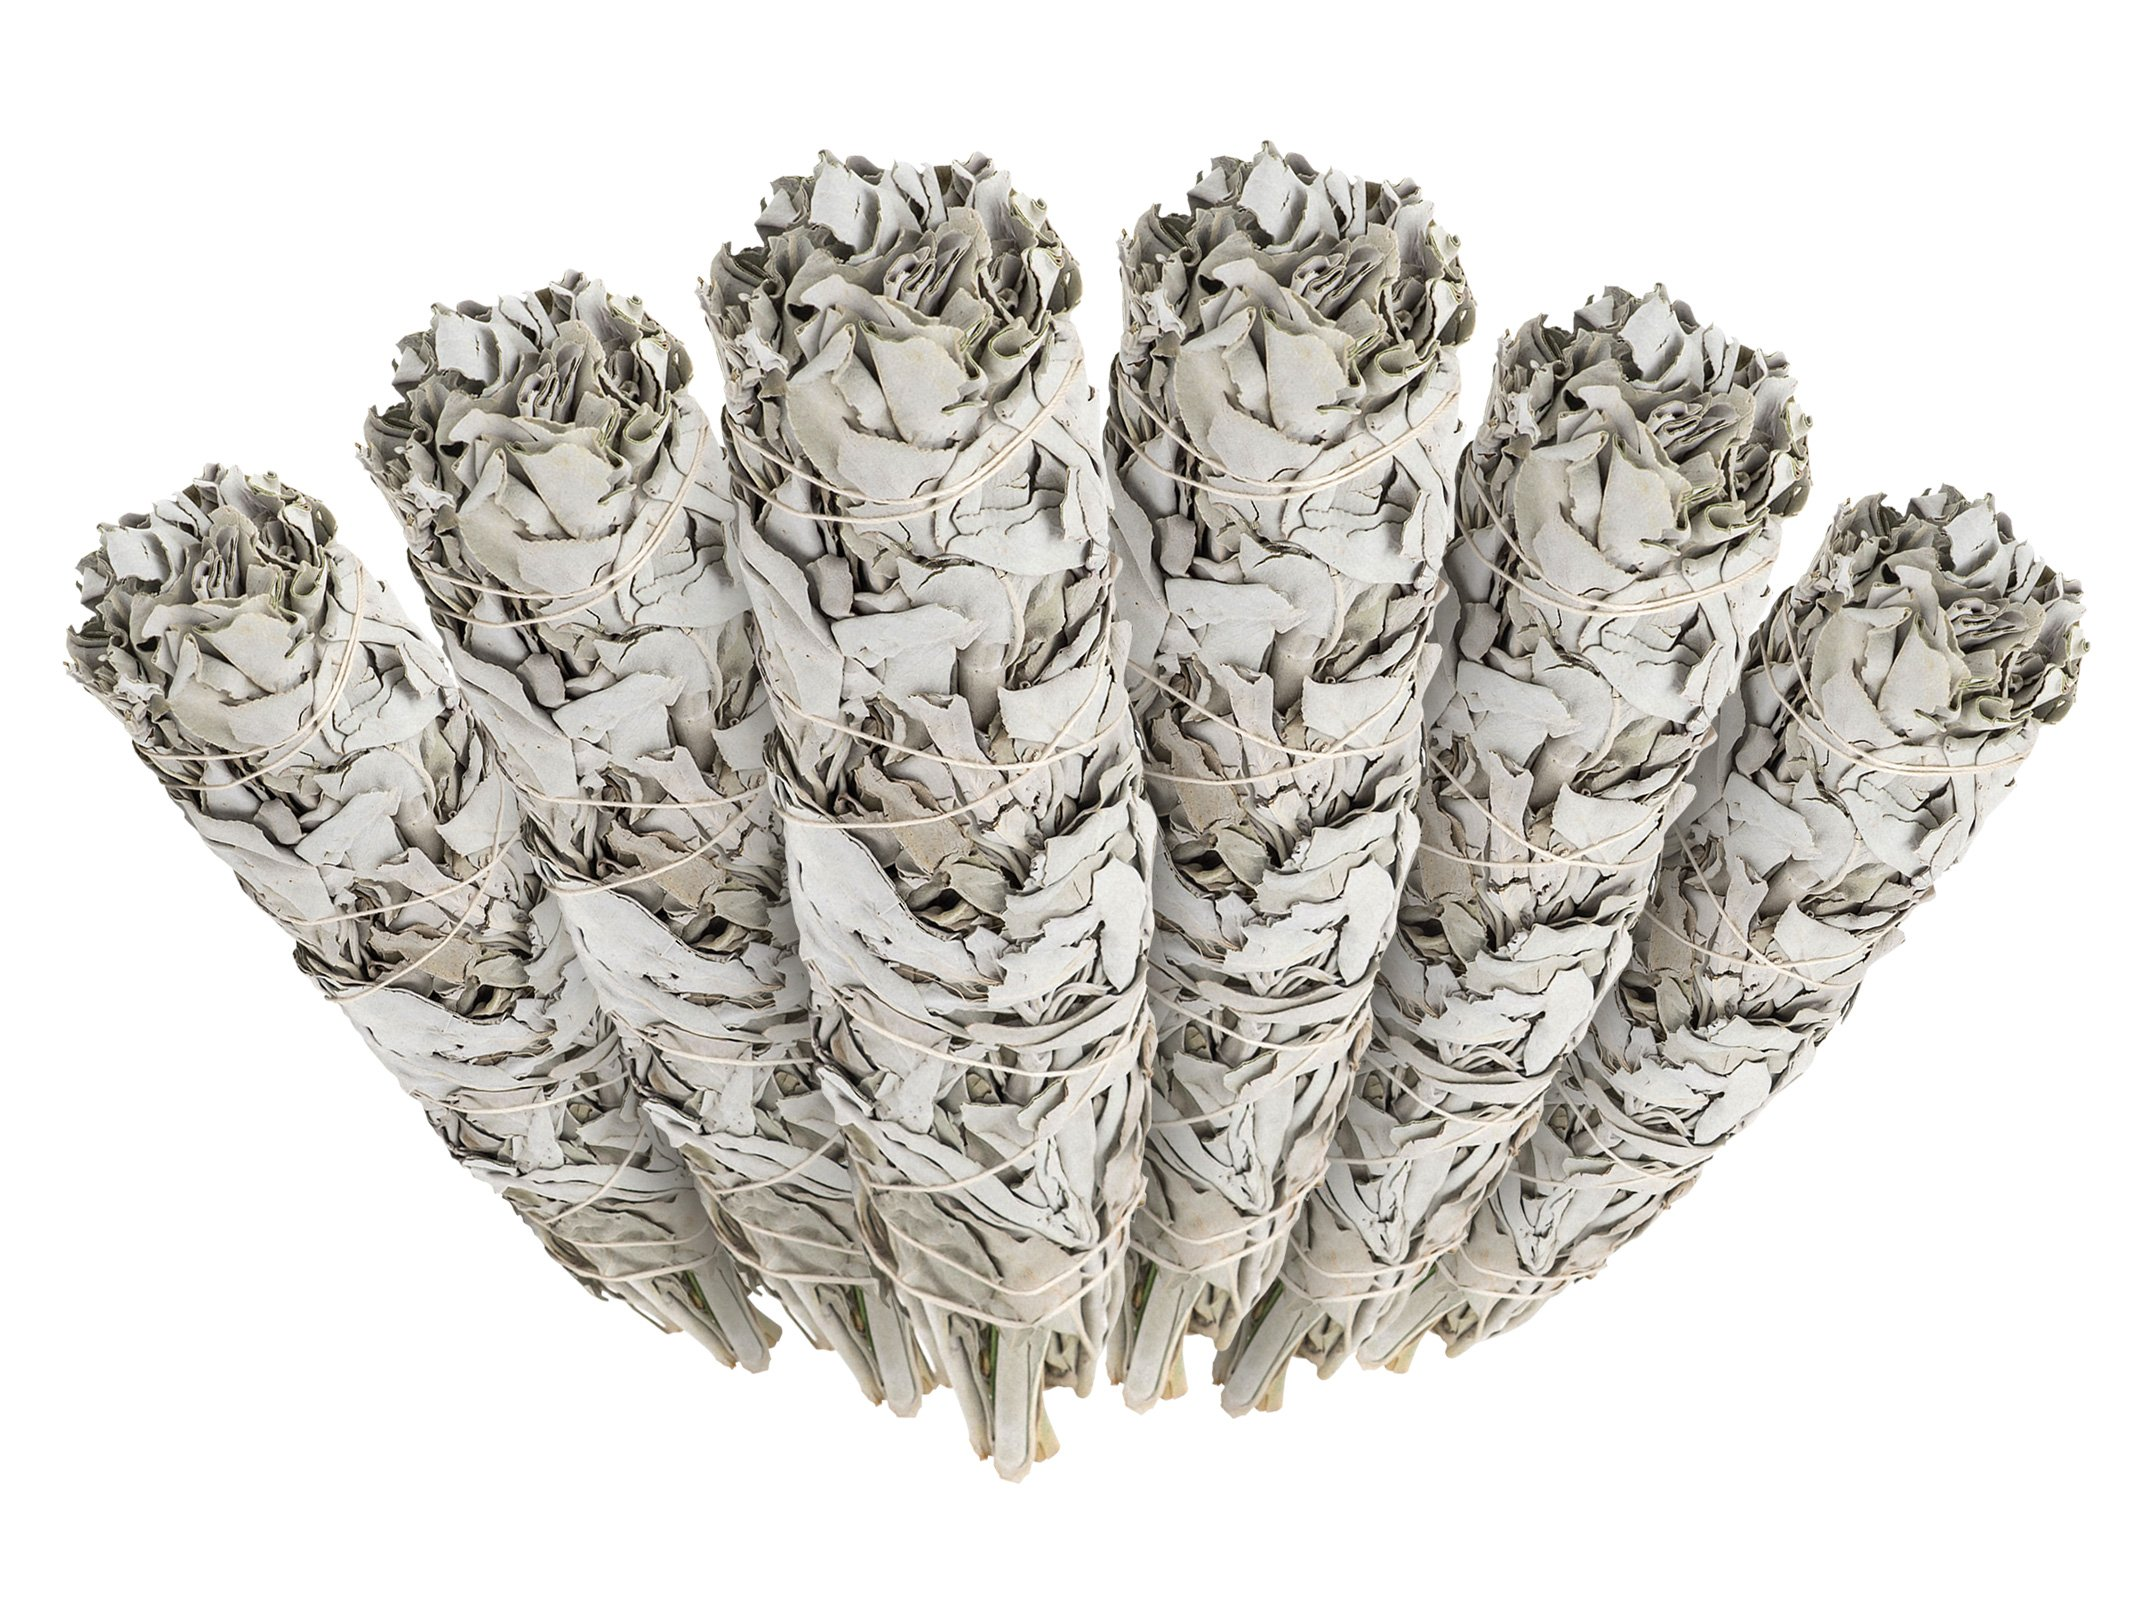 6 Pack - Premium California White Sage Smudge Sticks, Each Stick Approximately 4 Inches Long - Made in USA